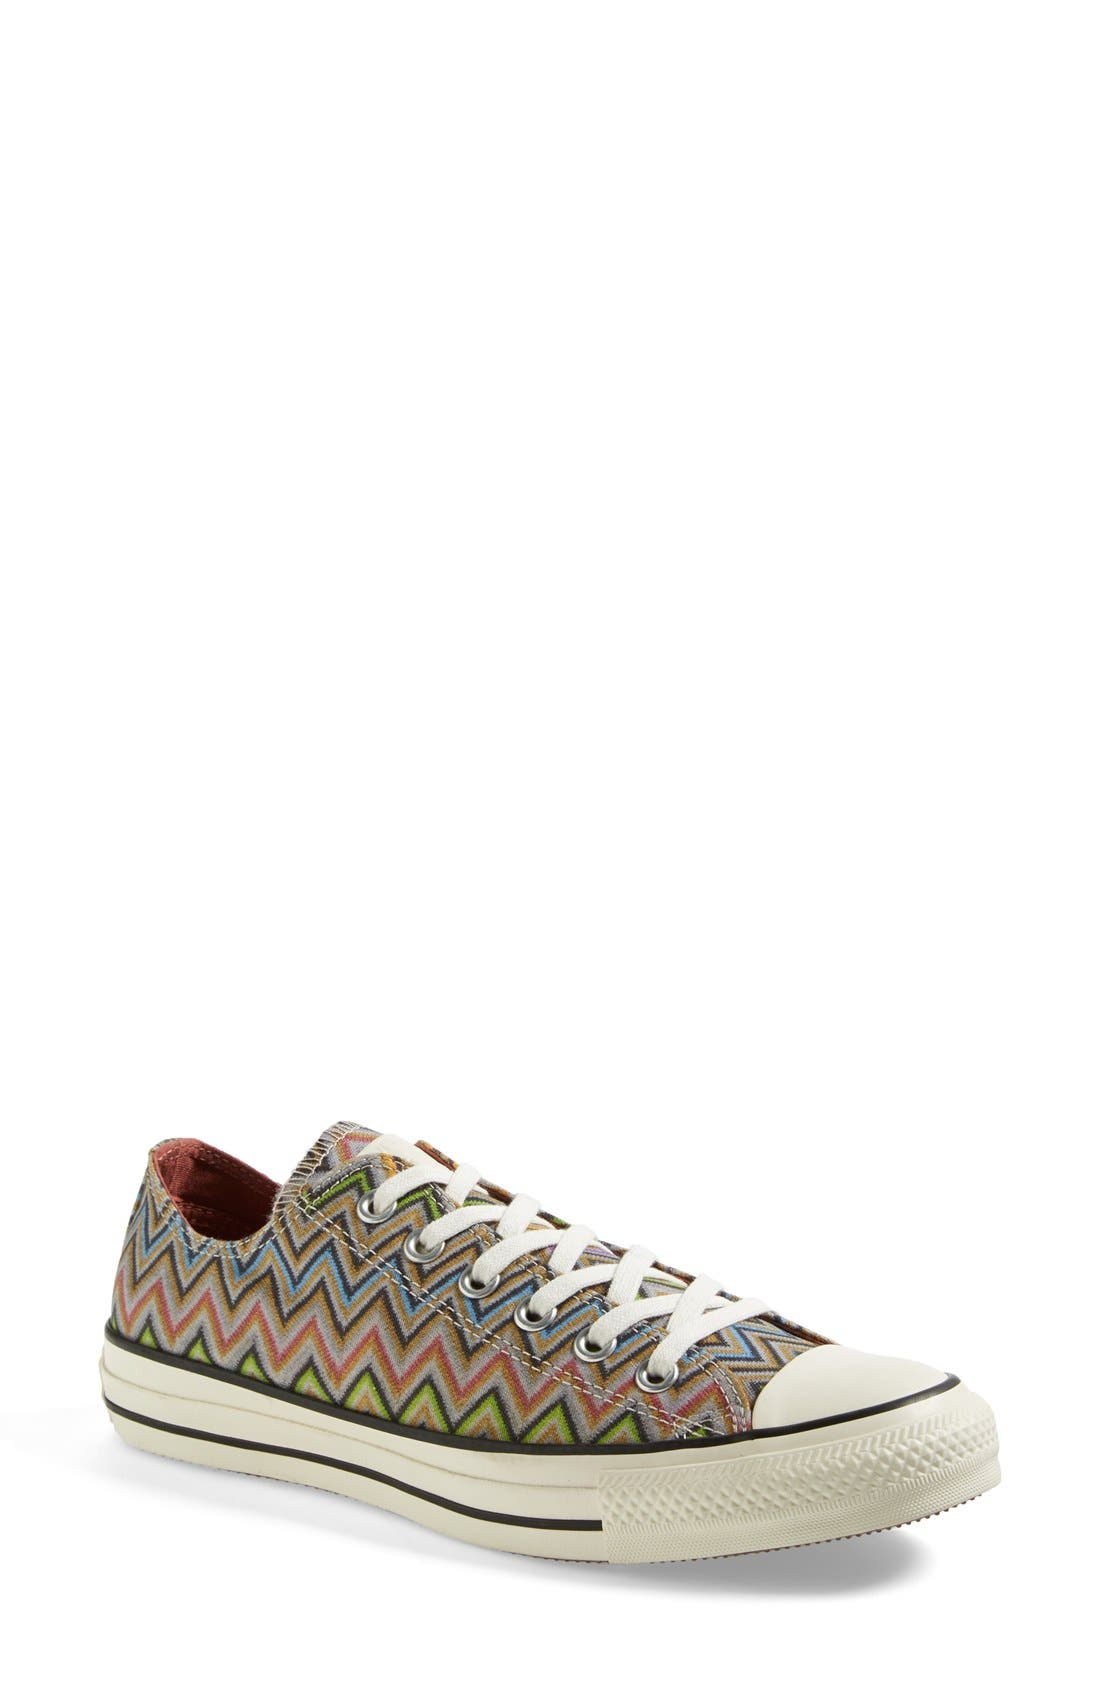 Main Image - Converse x Missoni Chuck Taylor® All Star® Low Sneaker (Nordstrom Exclusive Color)(Women)